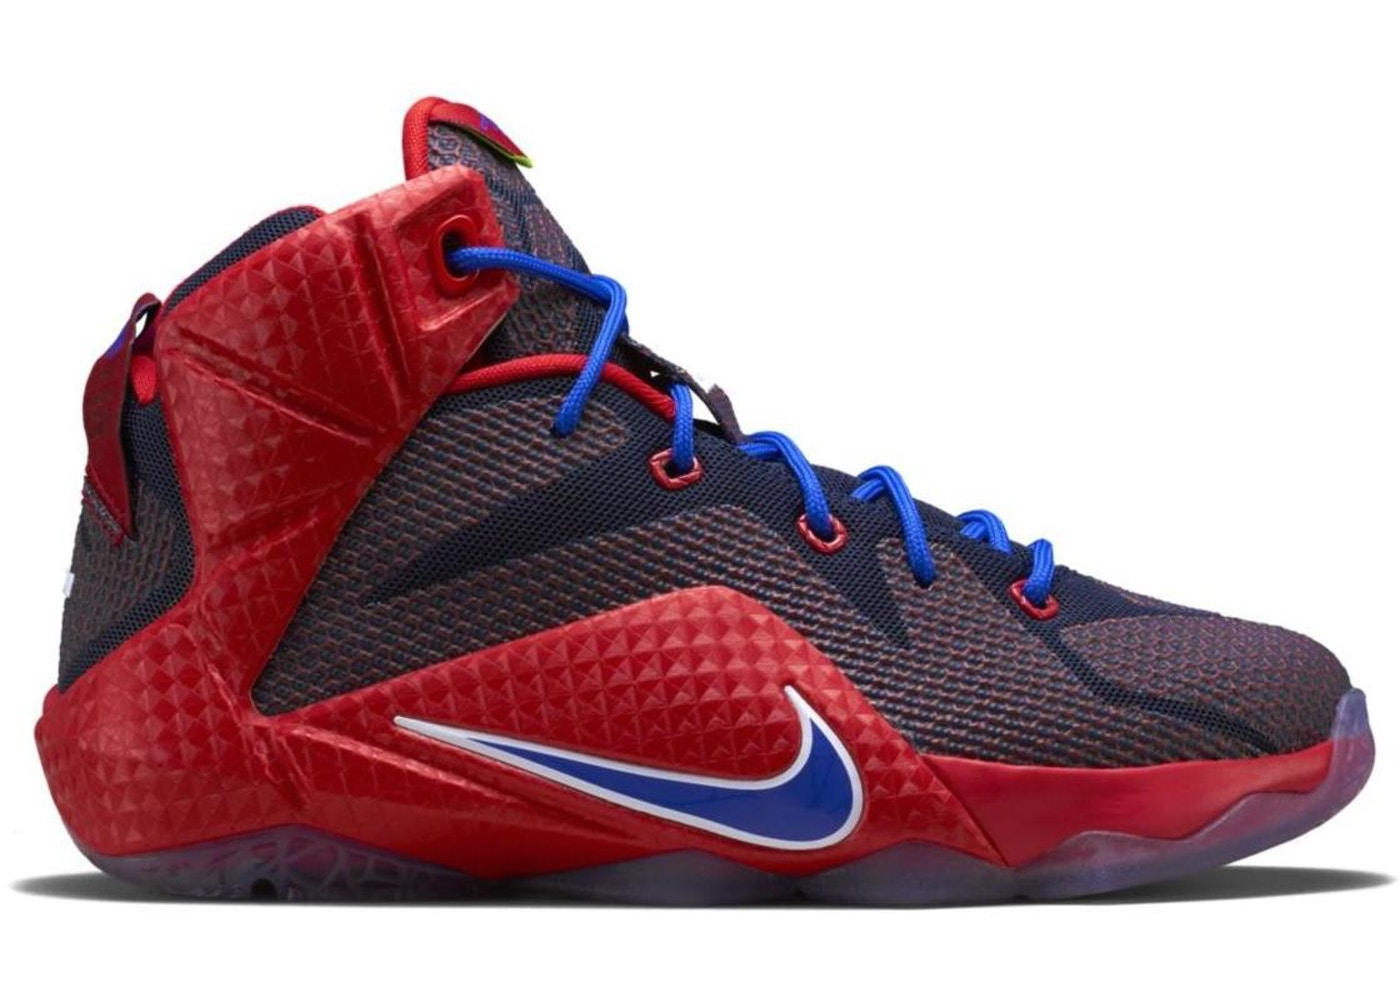 new style 4f658 60483 Nike LeBron 12 Shoes - New Highest Bids